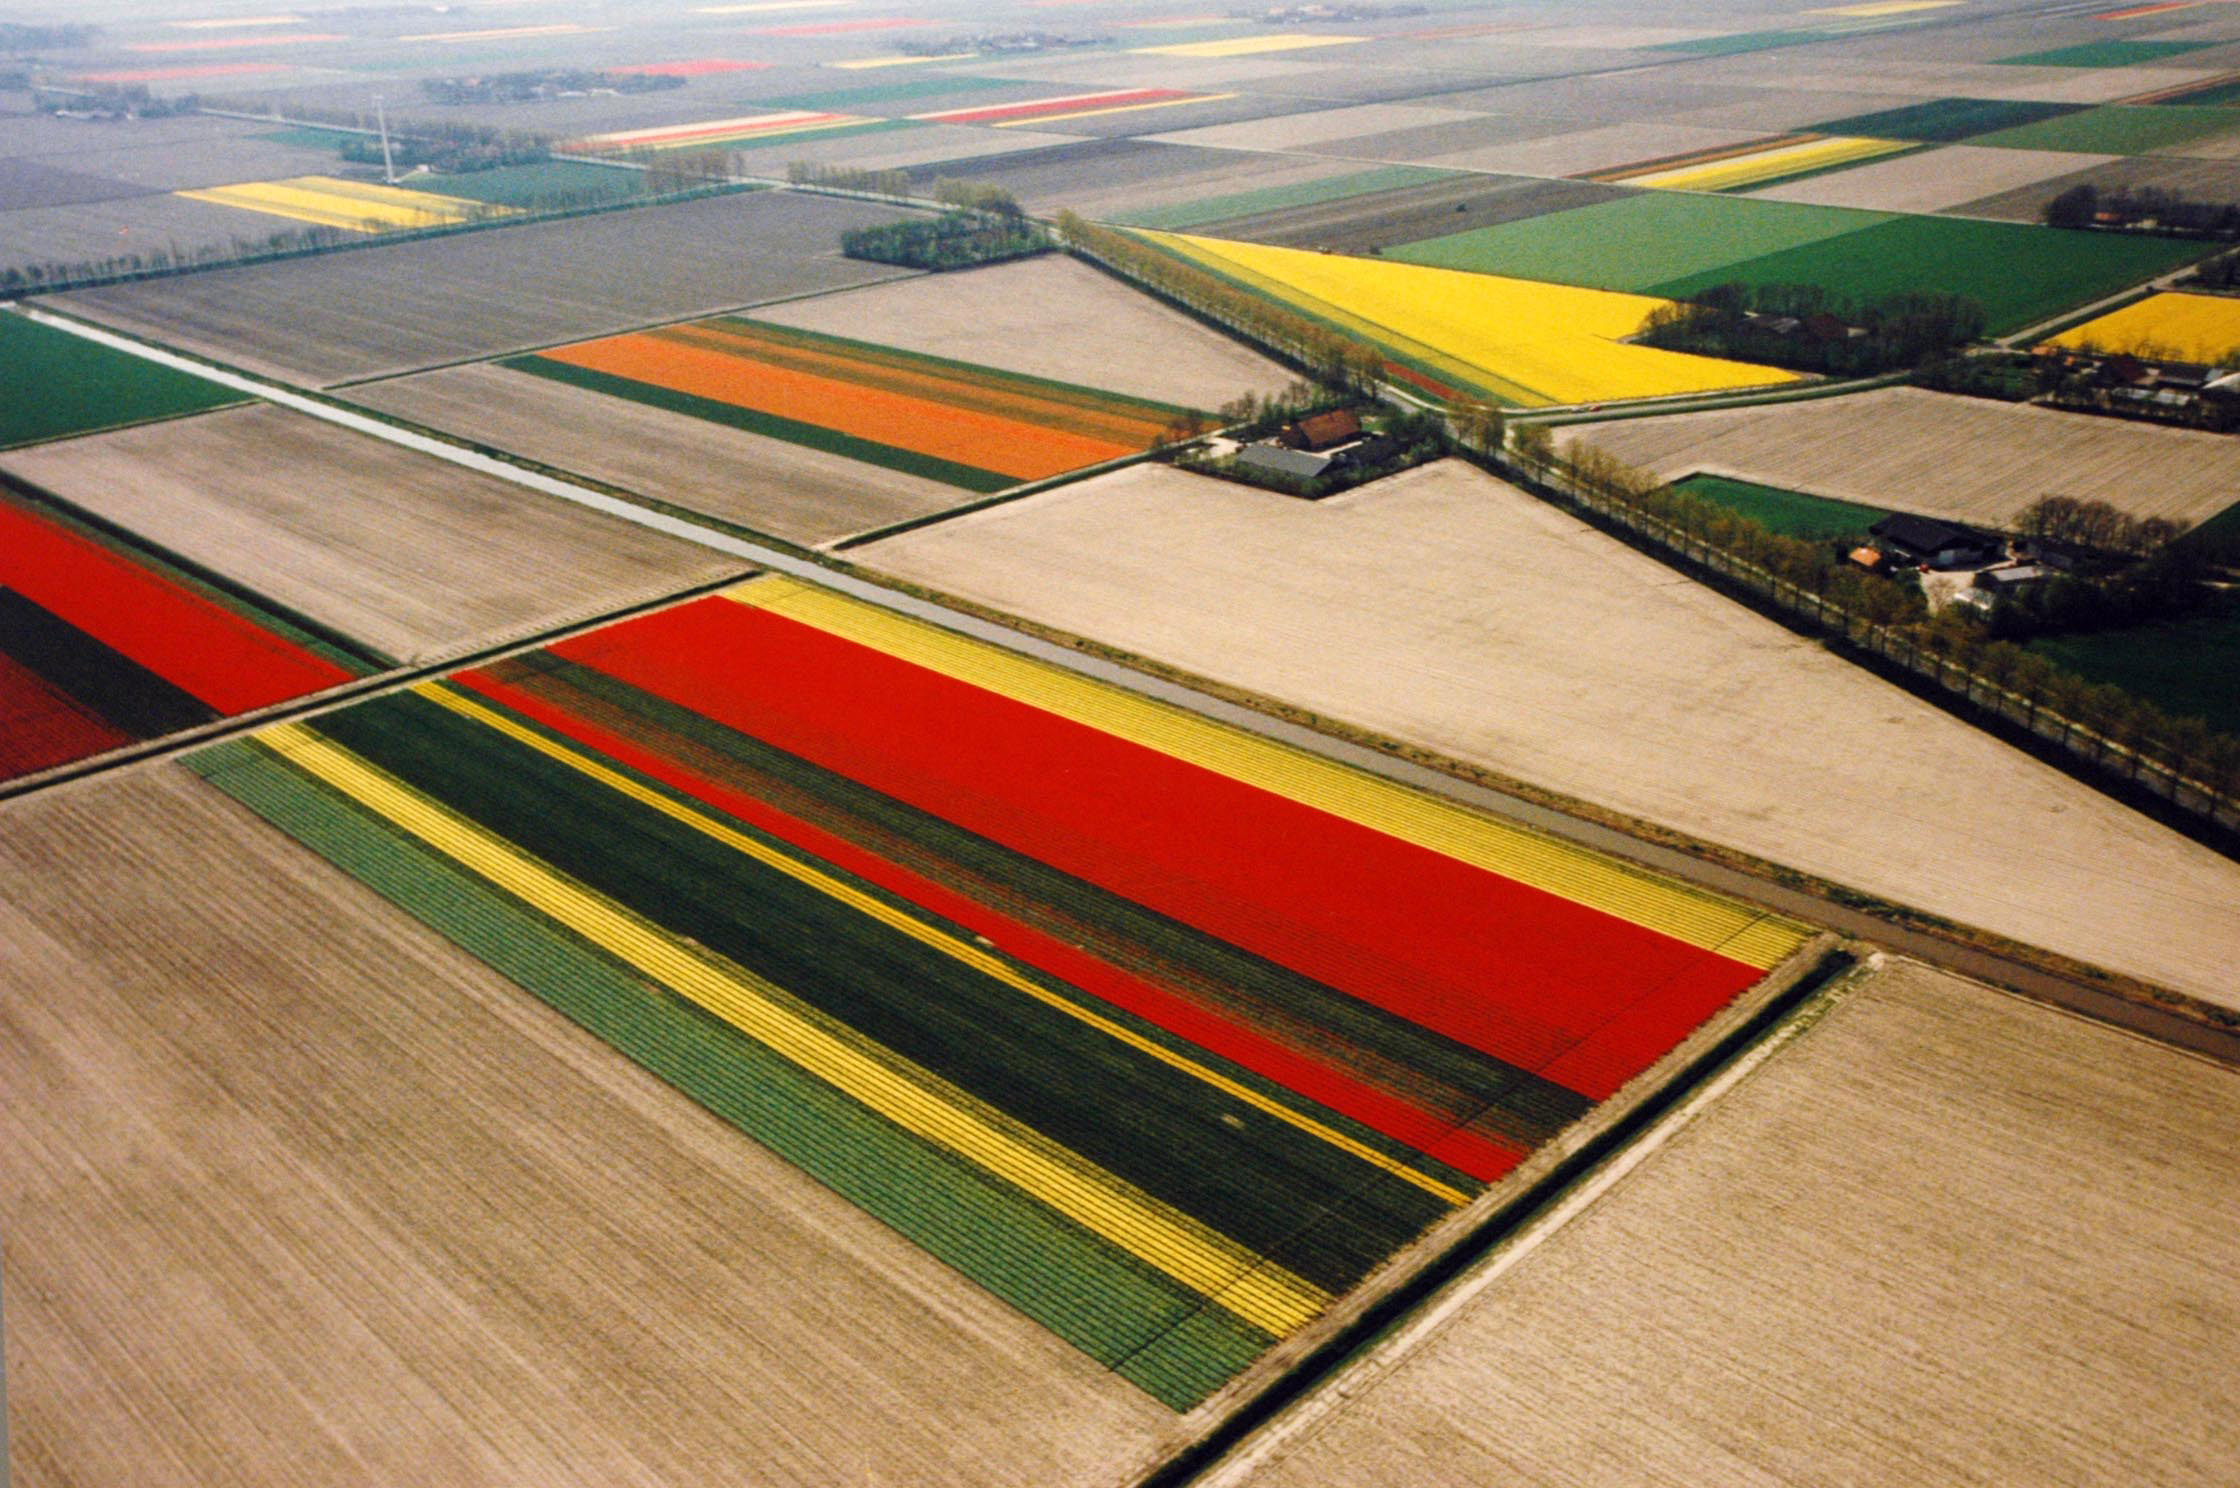 The straight plots in the design of the Noordoostpolder and the later cultivation of flower bulbs give the landscape a Mondriaan-like appearance from the air.